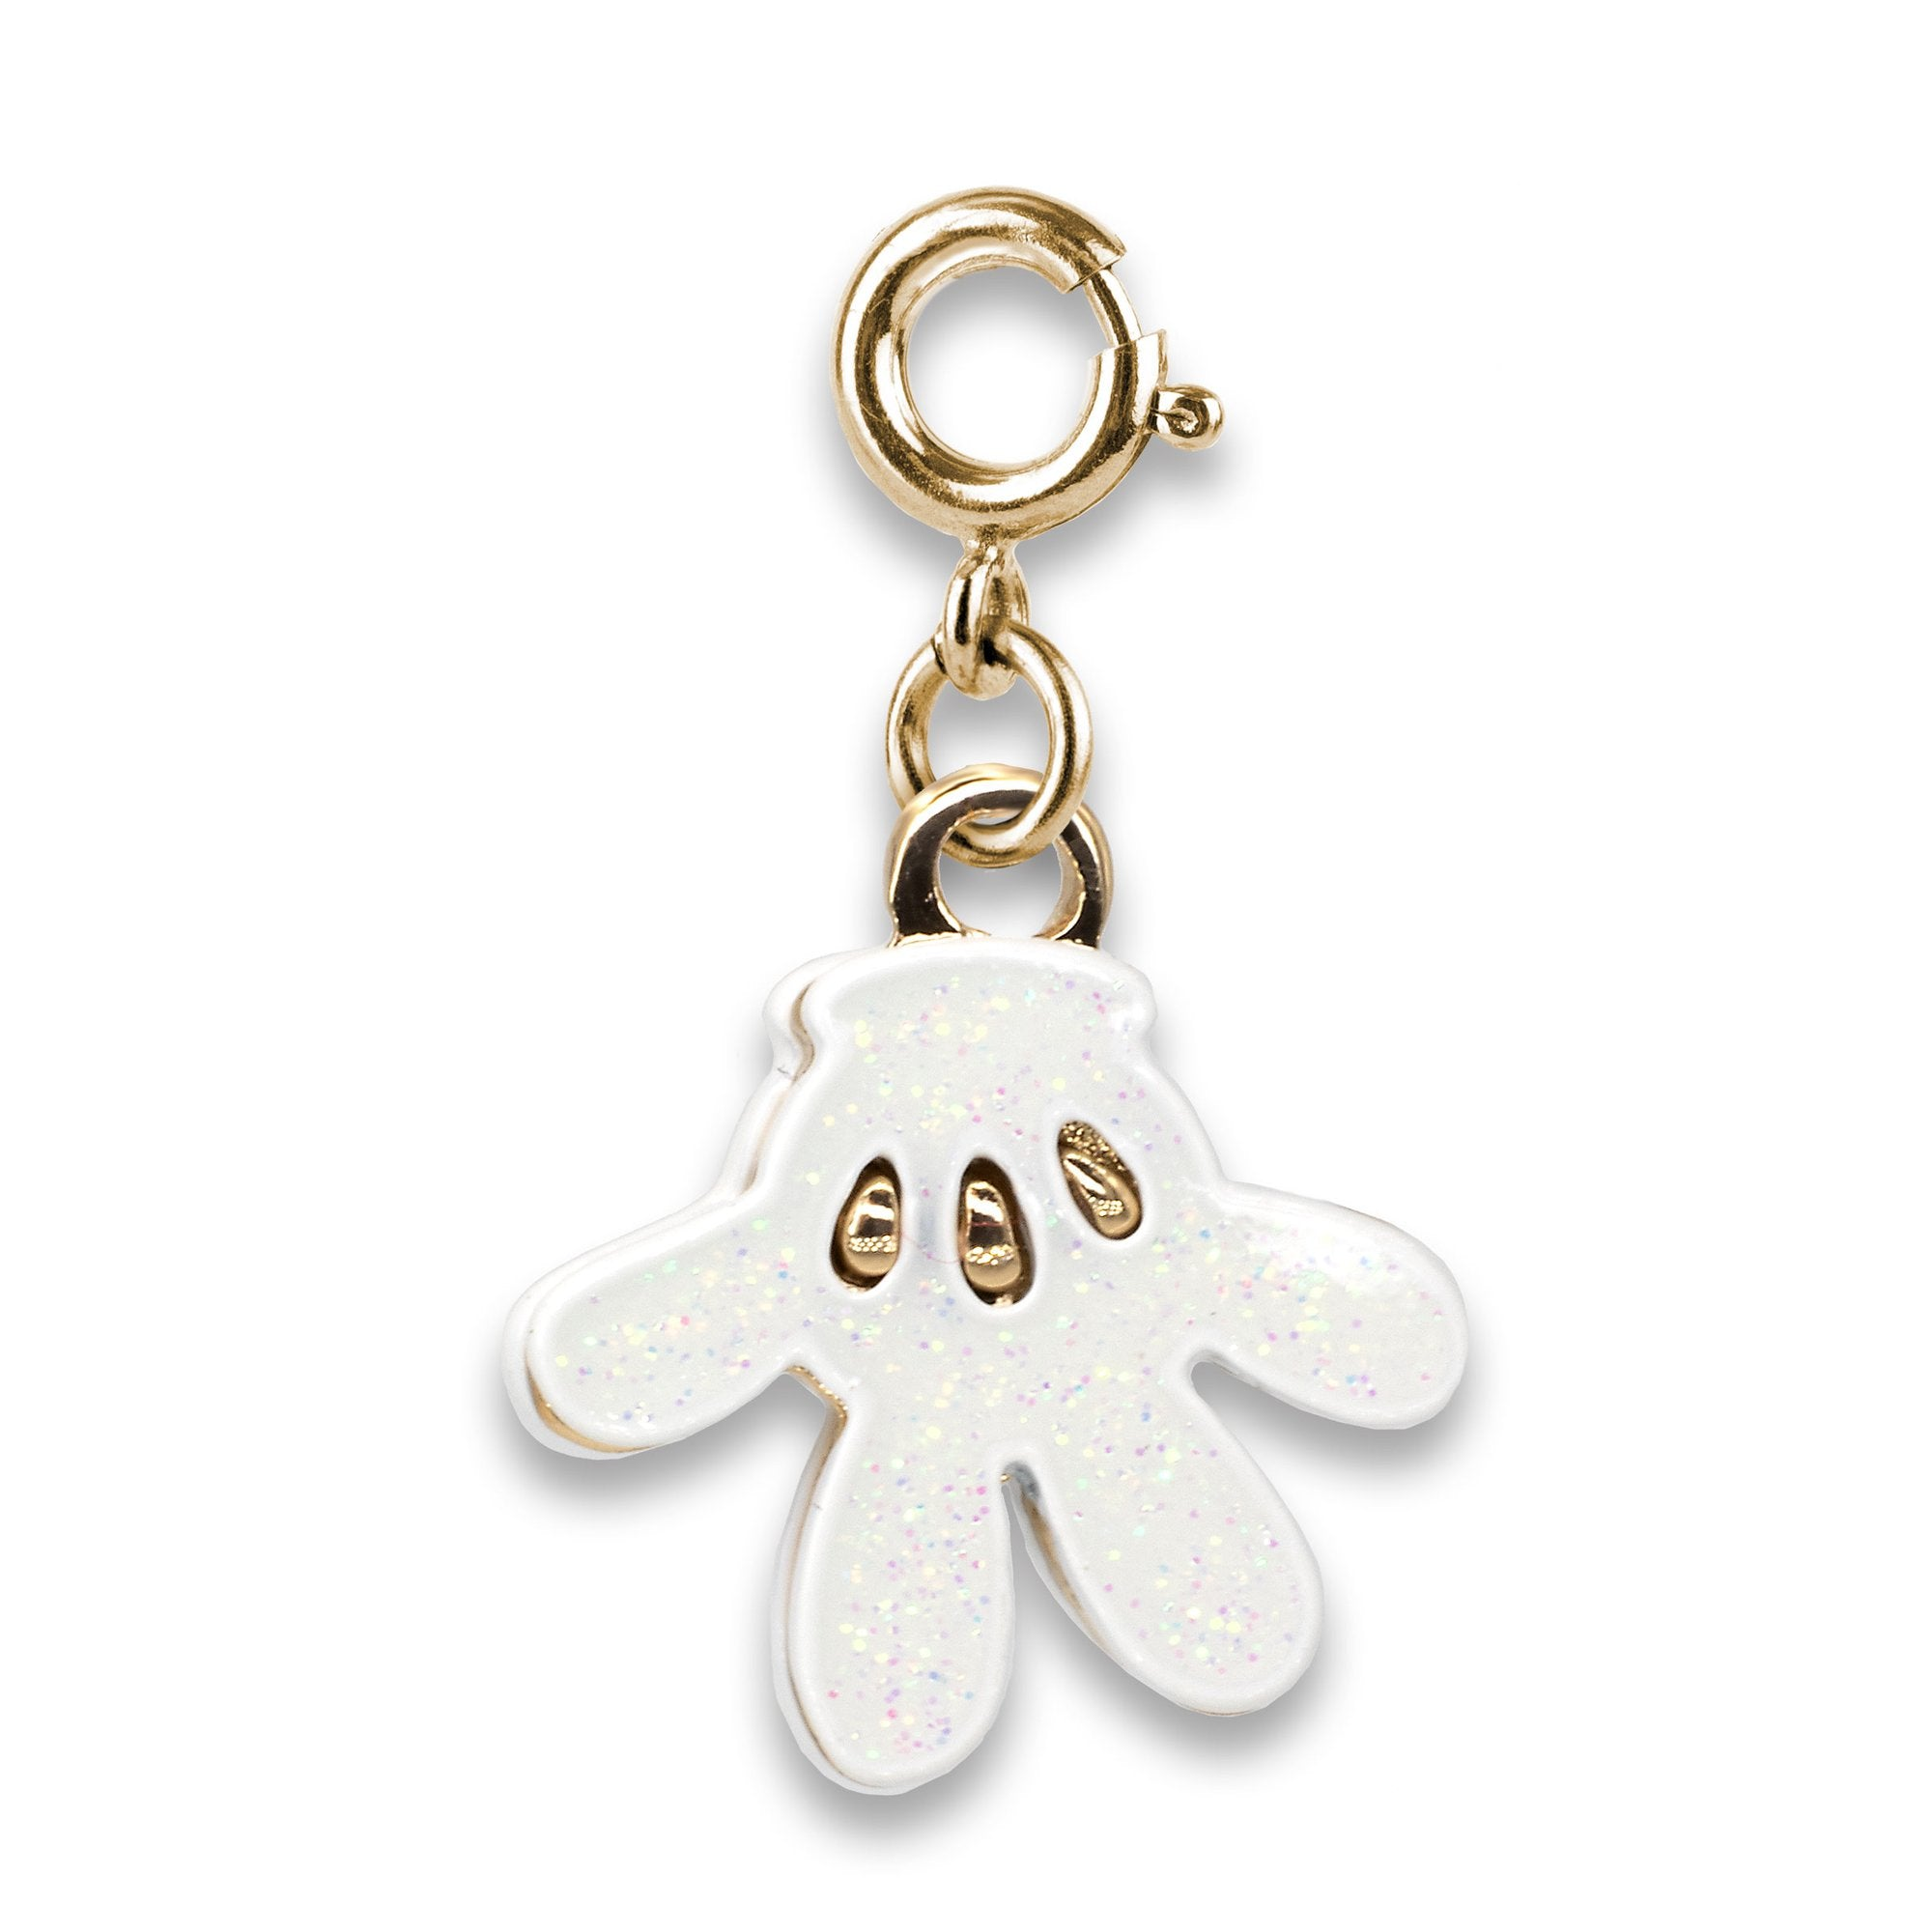 Gold Mickey Glove Charm